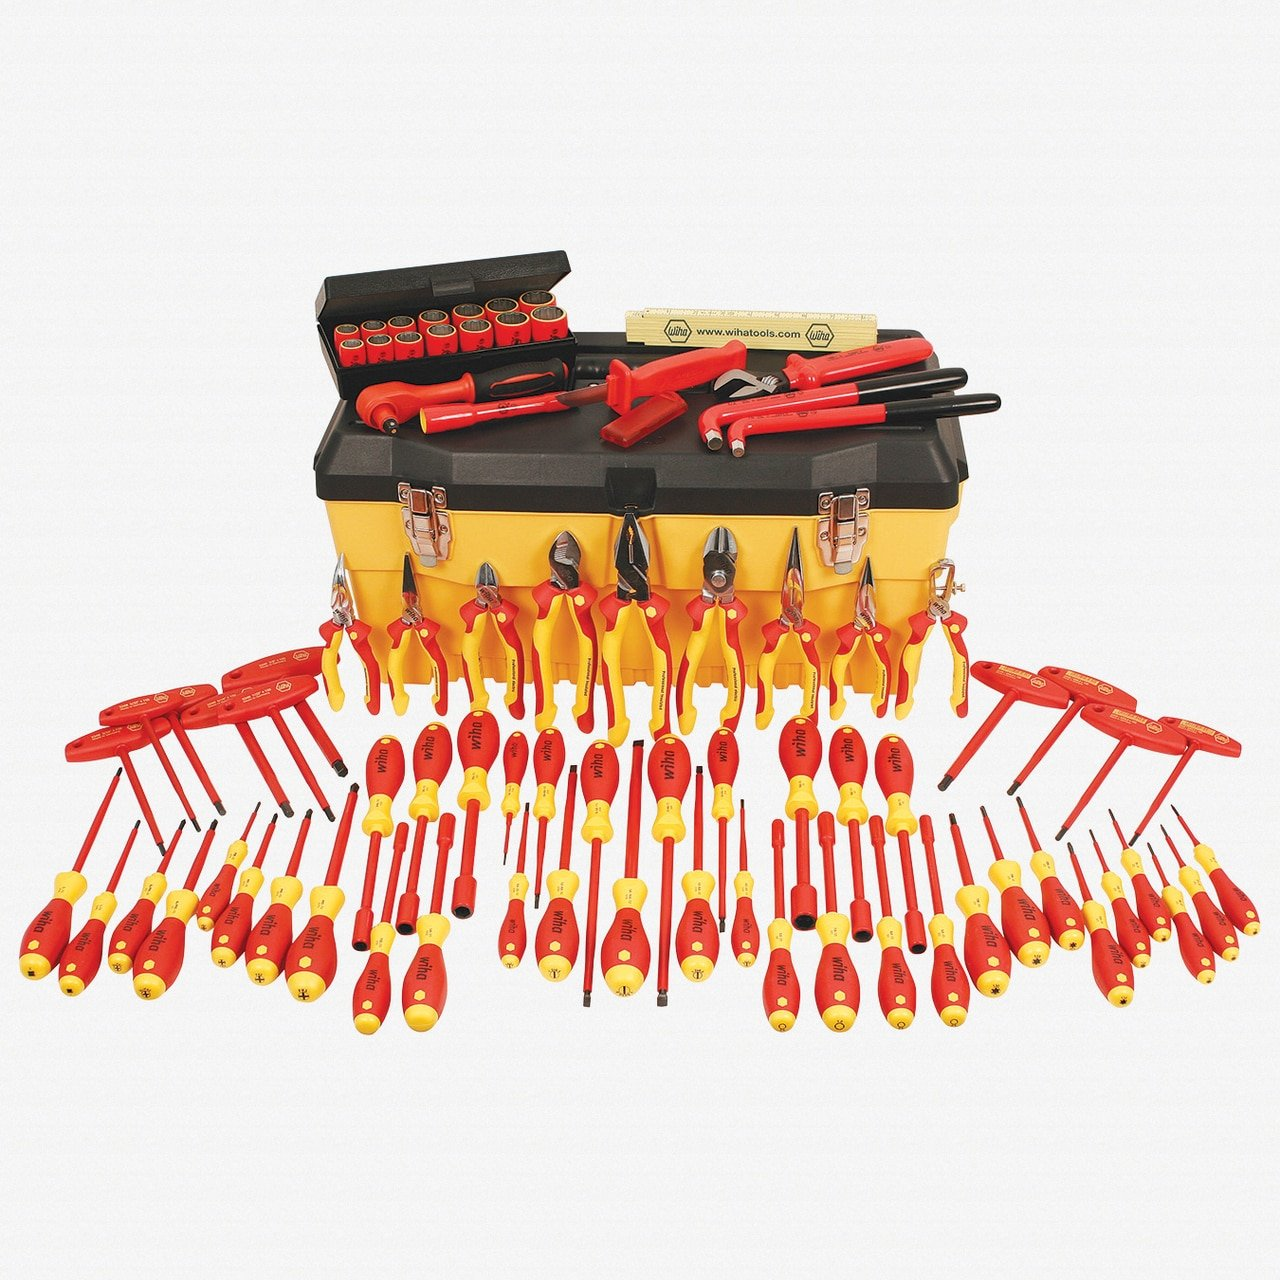 Wiha 32877 Insulated Set with Pliers, Cutters, Nut Drivers, Screwdrivers, T Handles, Knife, Sockets, 3/8-Inch Ratchet, Adj Wrench, Ruler, 80-Piece